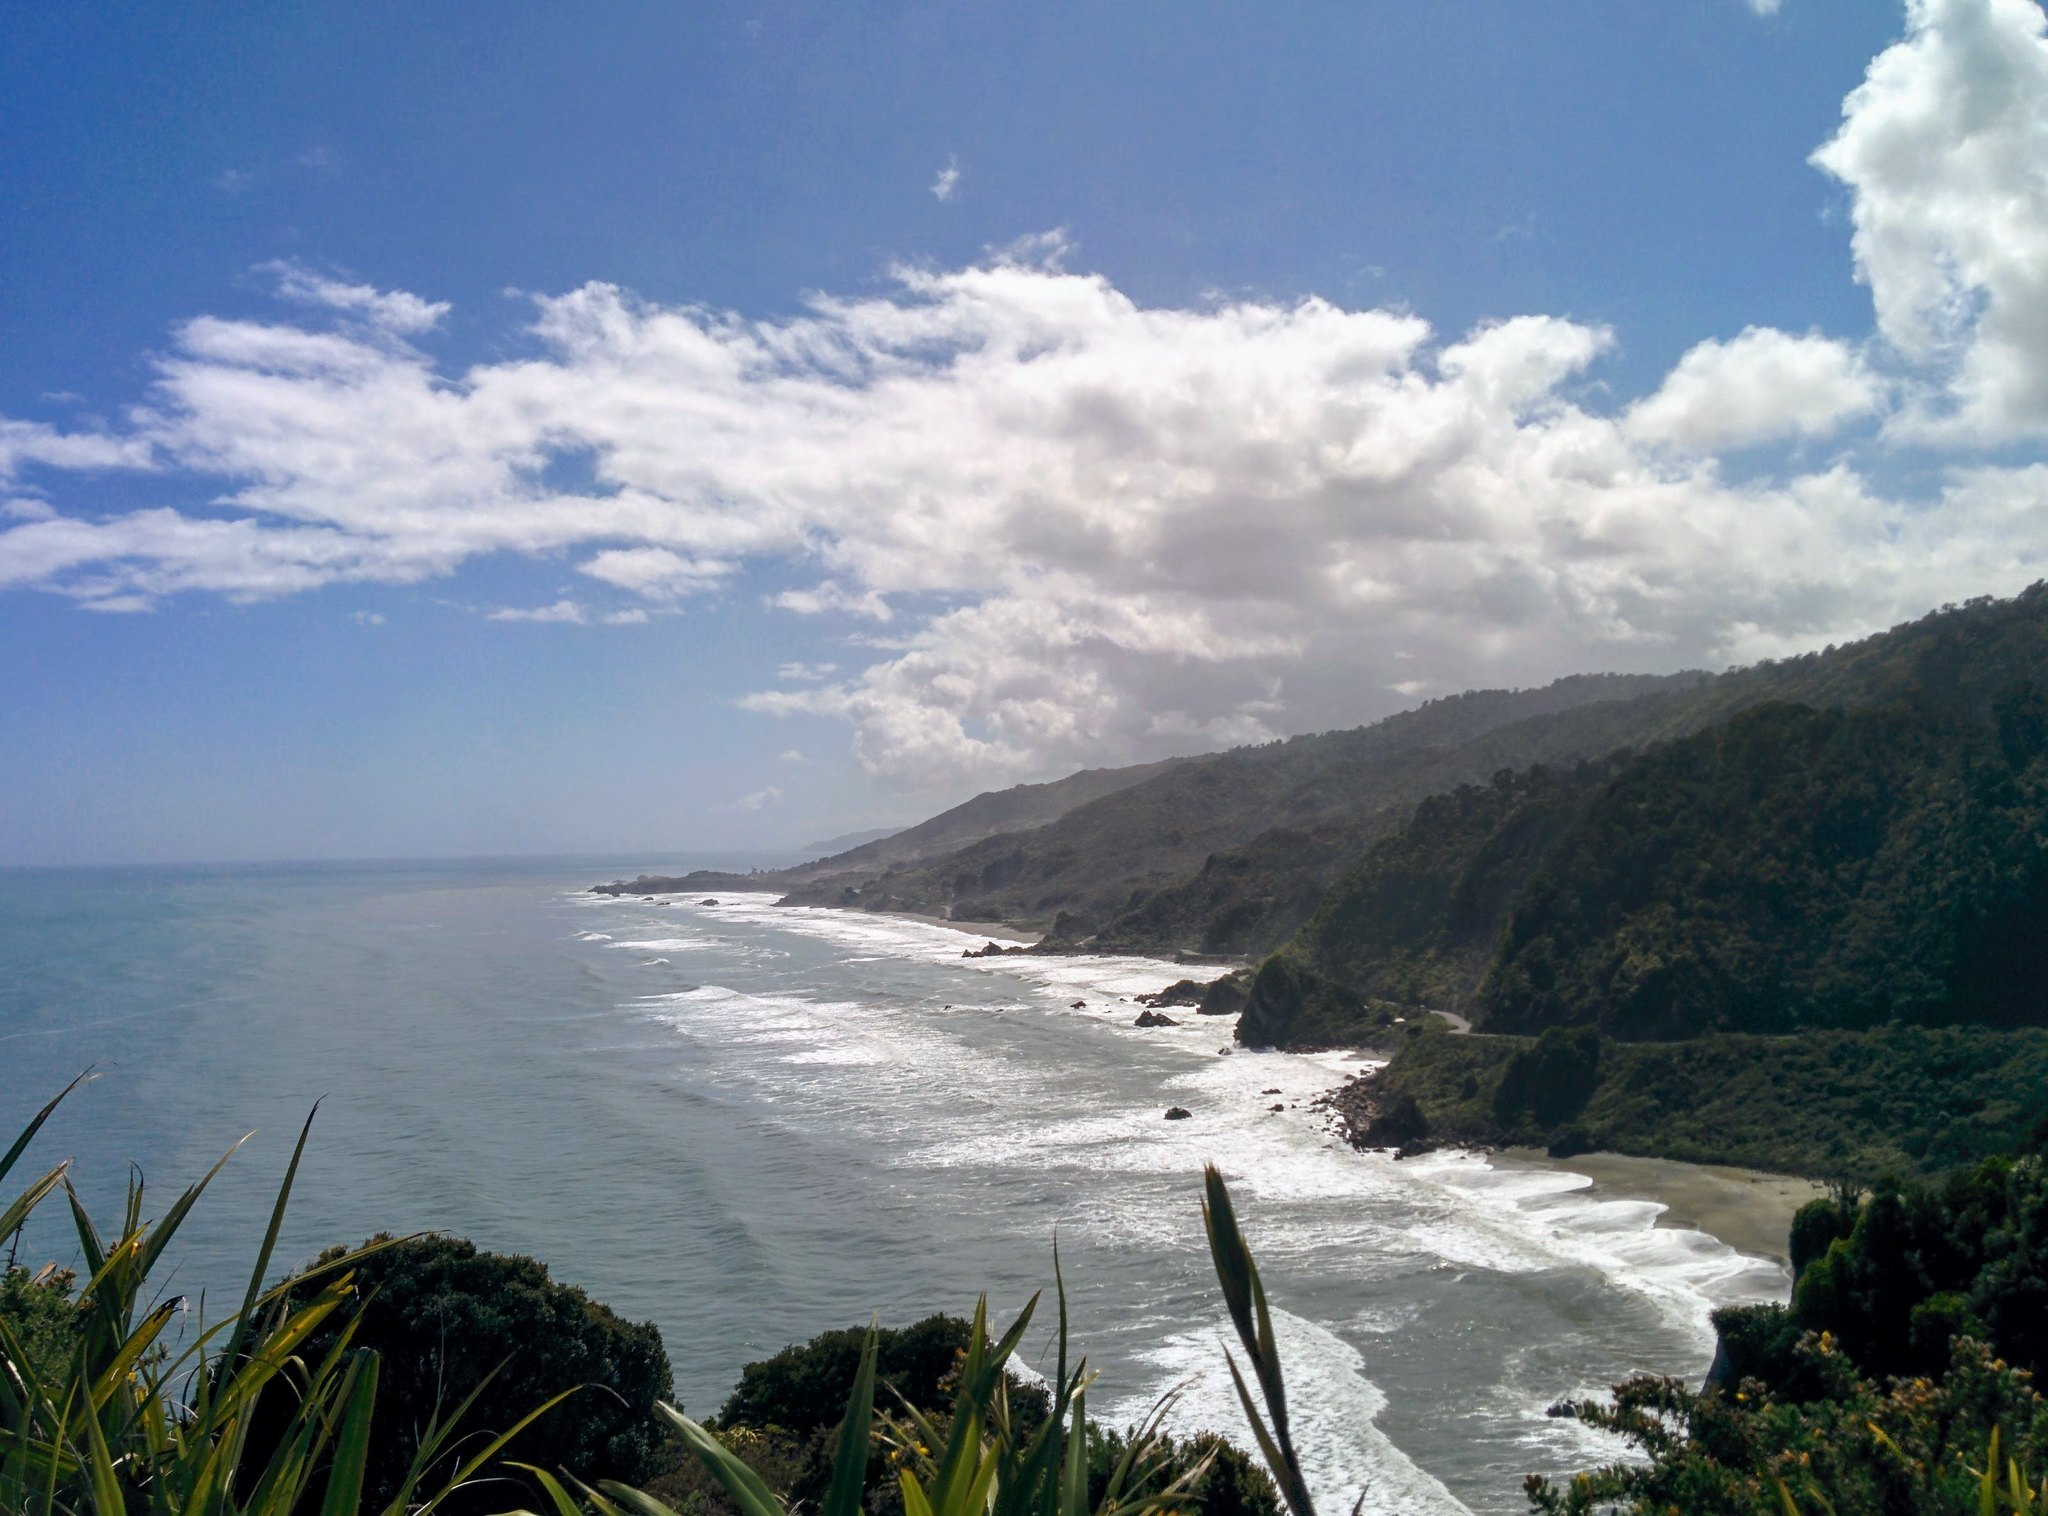 The shoreline south of Greymouth